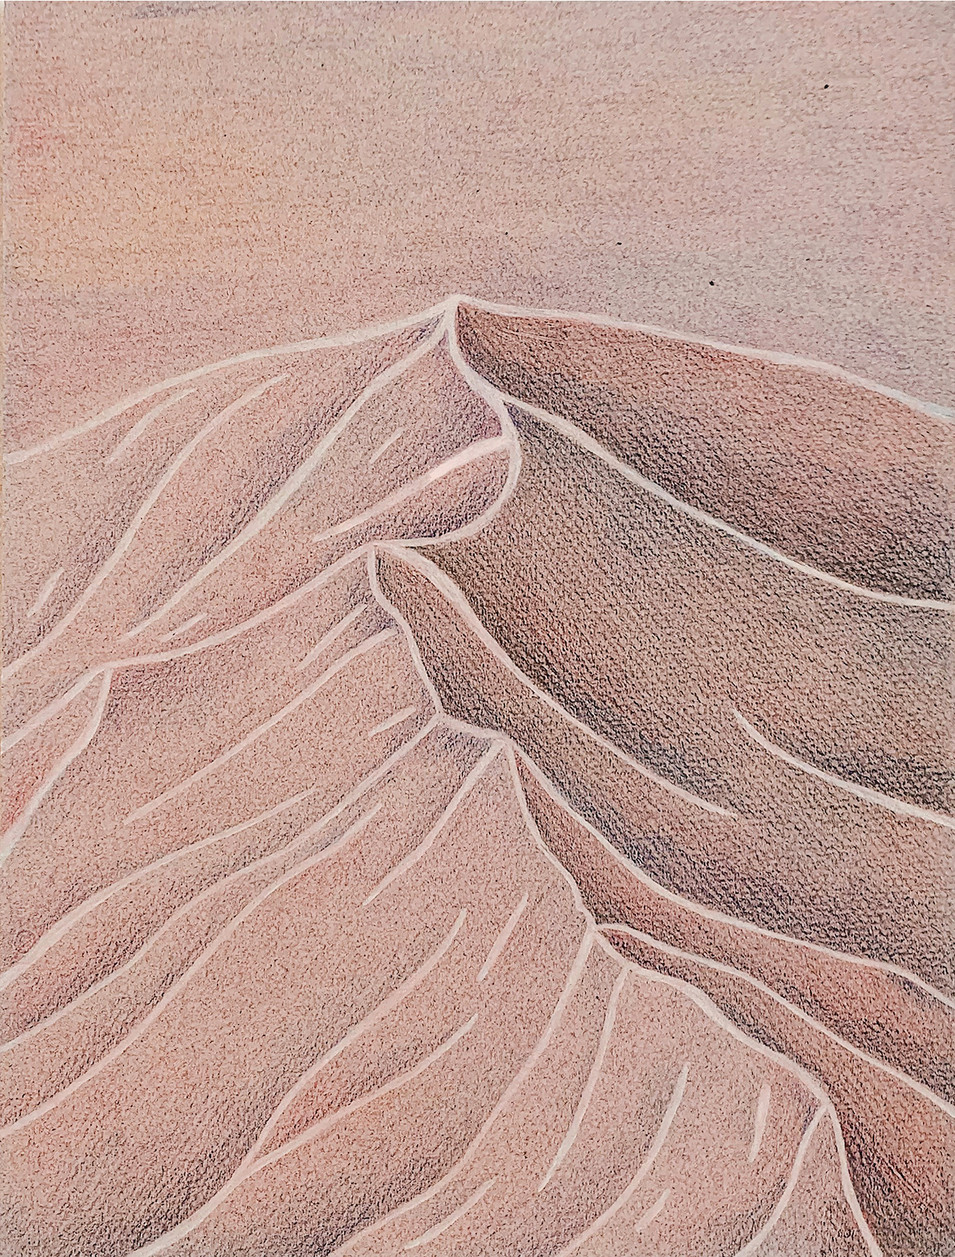 A Gentle Mountain / 2019